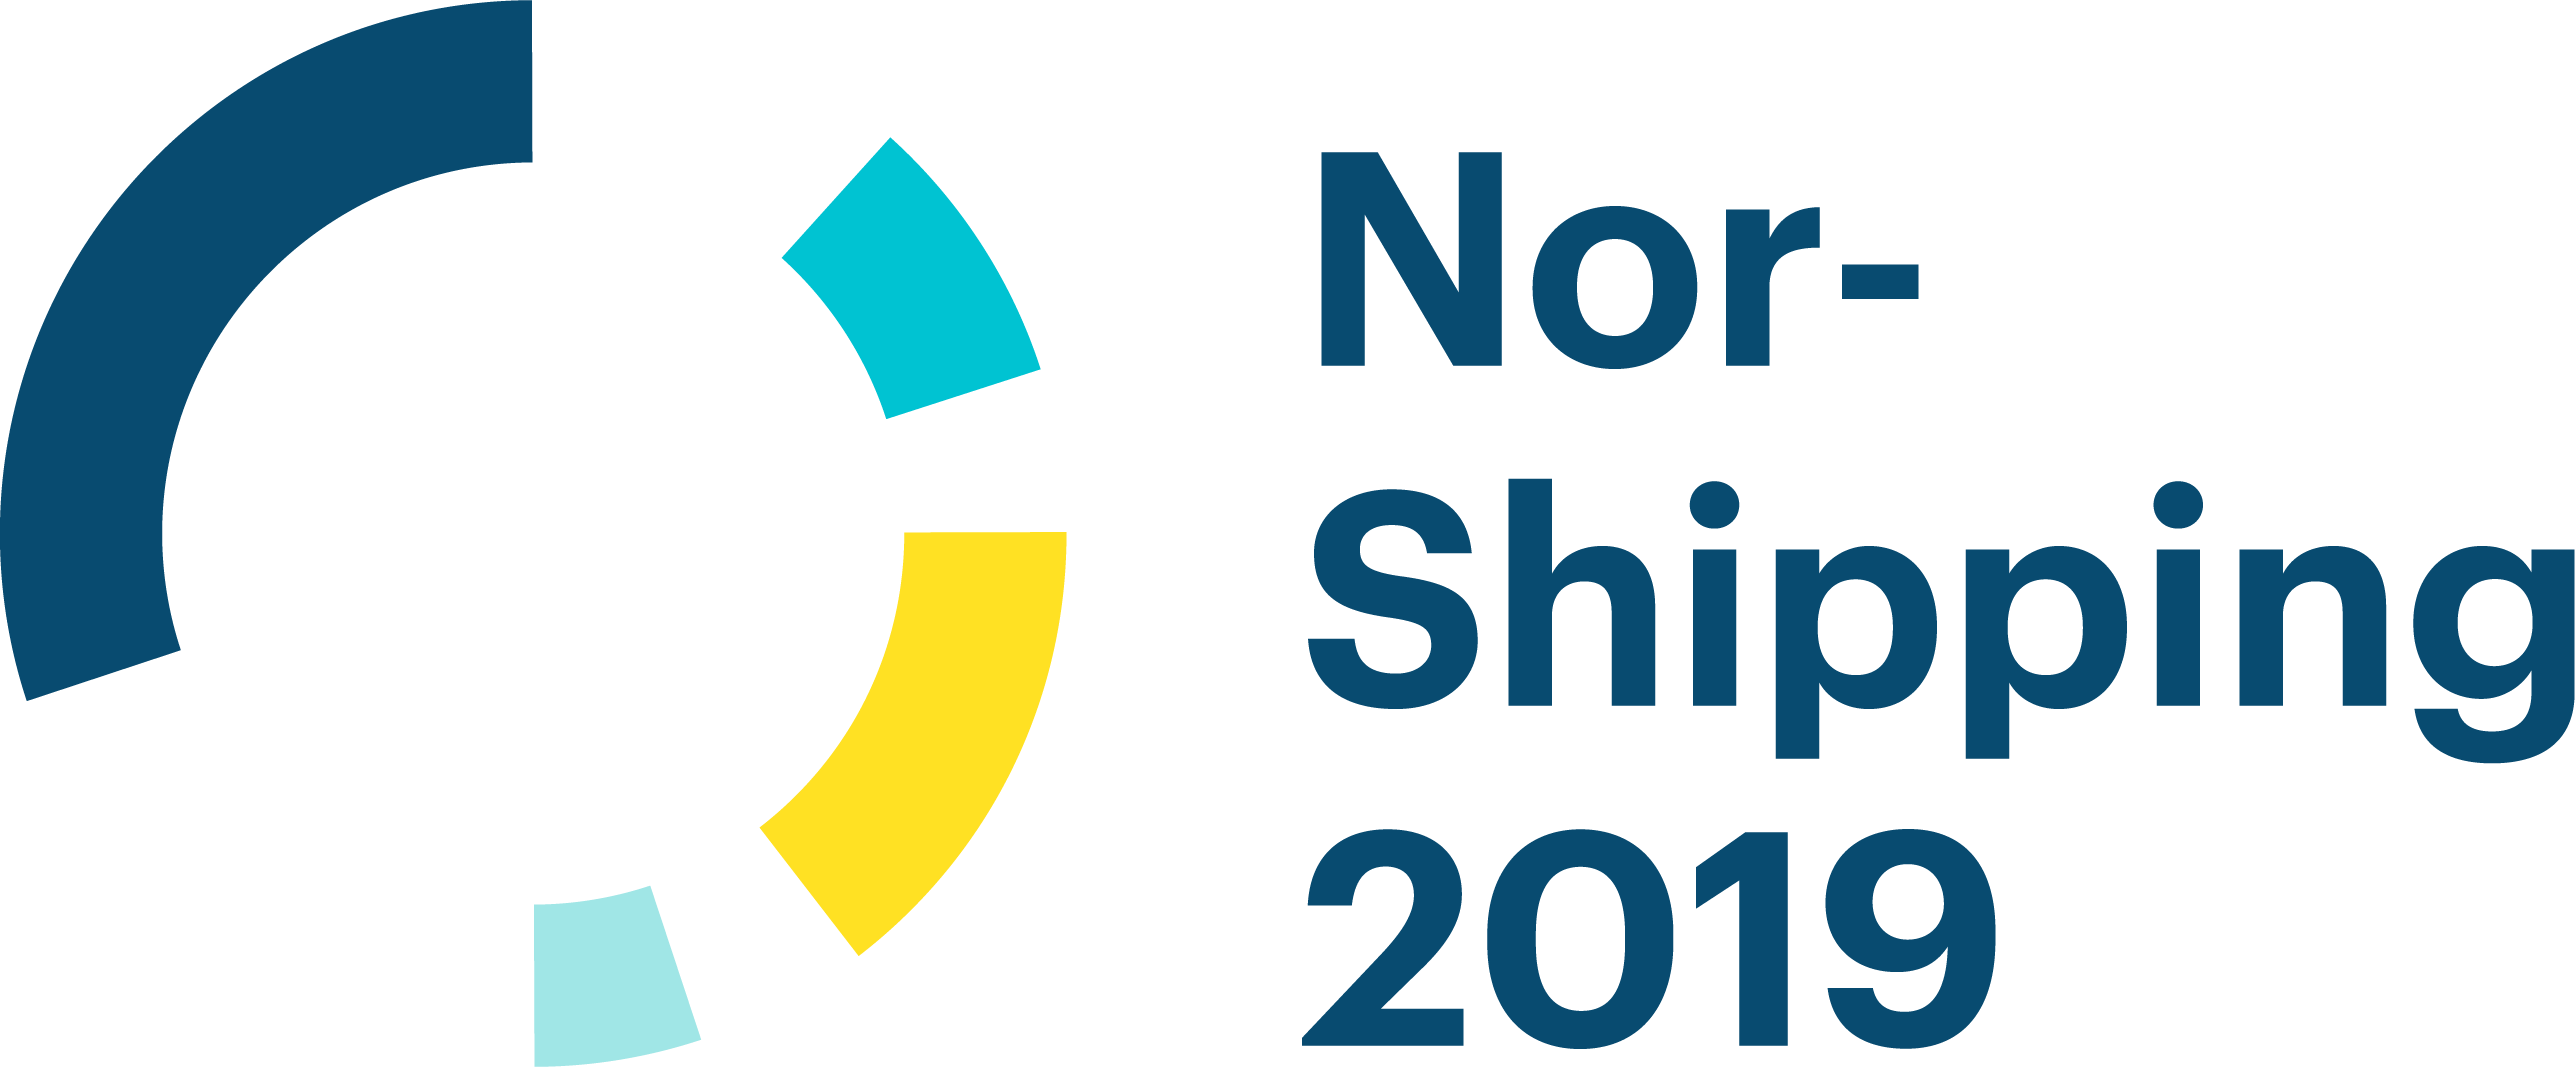 Pres-Kol na Nor-Shipping w Norwegii